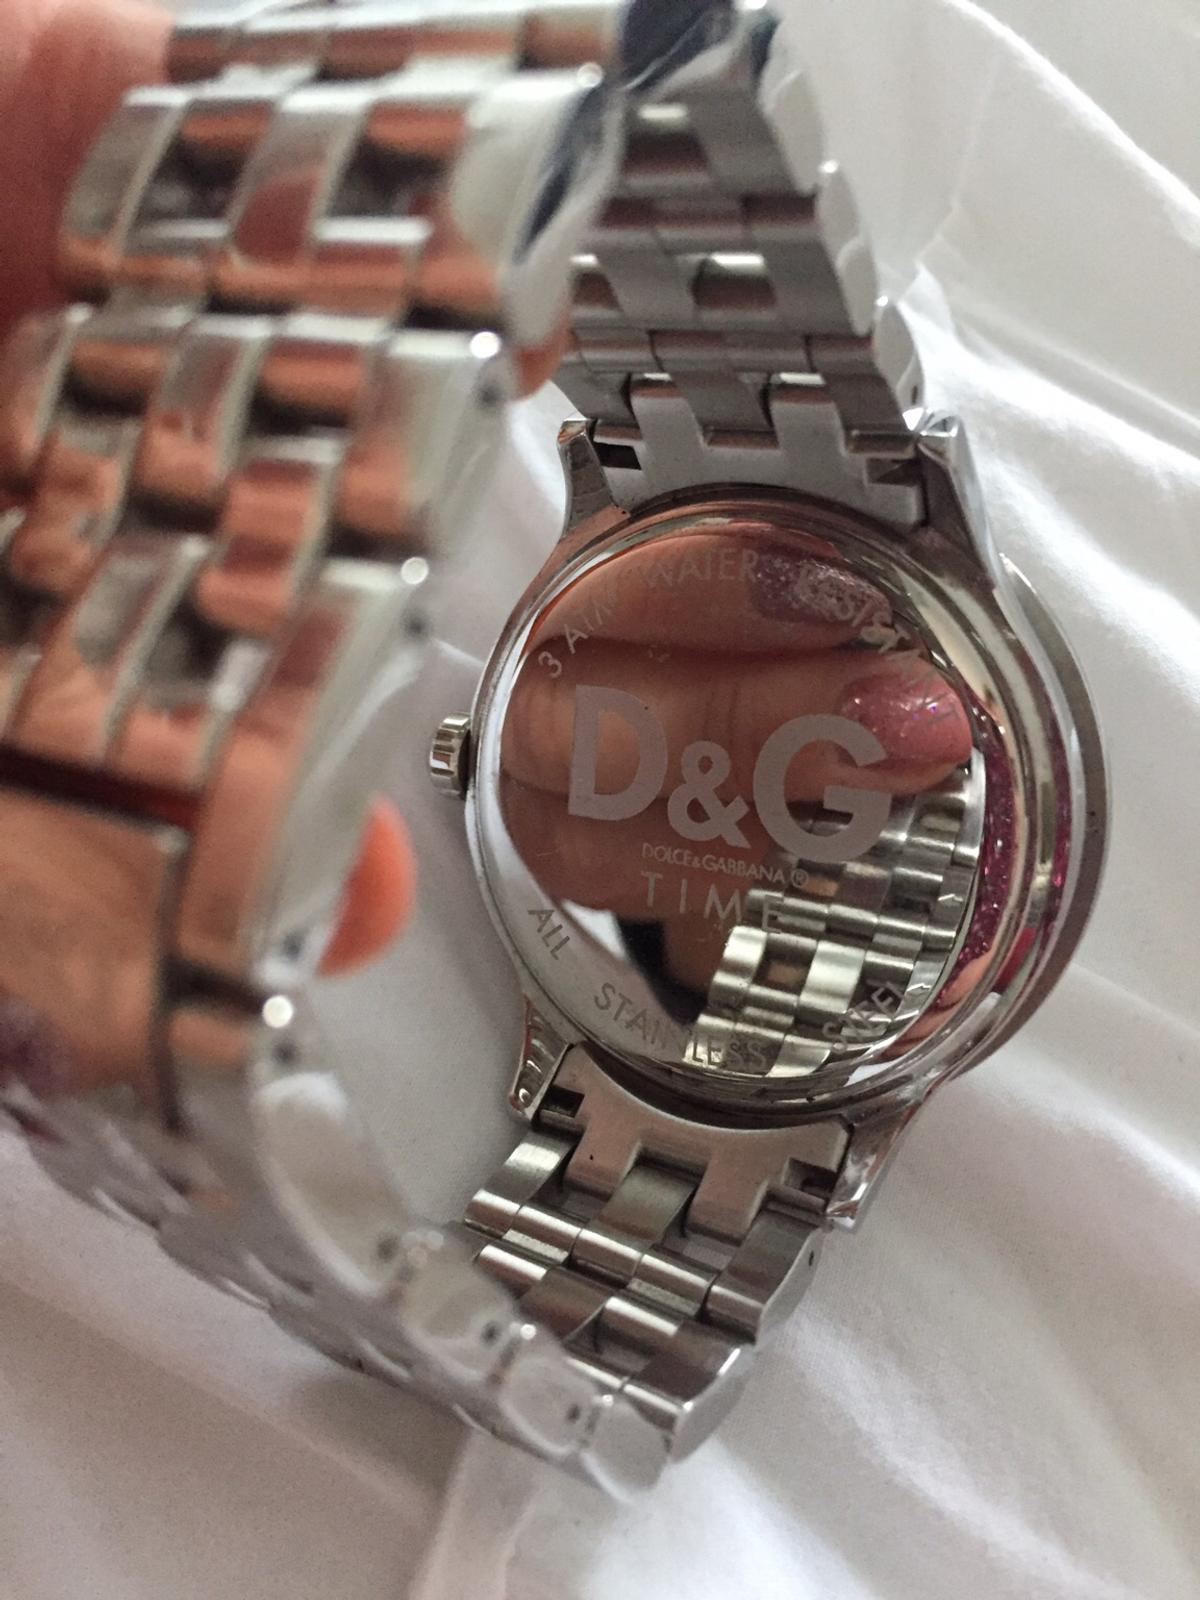 D G Time Men S Watch Dw0144 Stainless Steel In Bd21 Bradford For